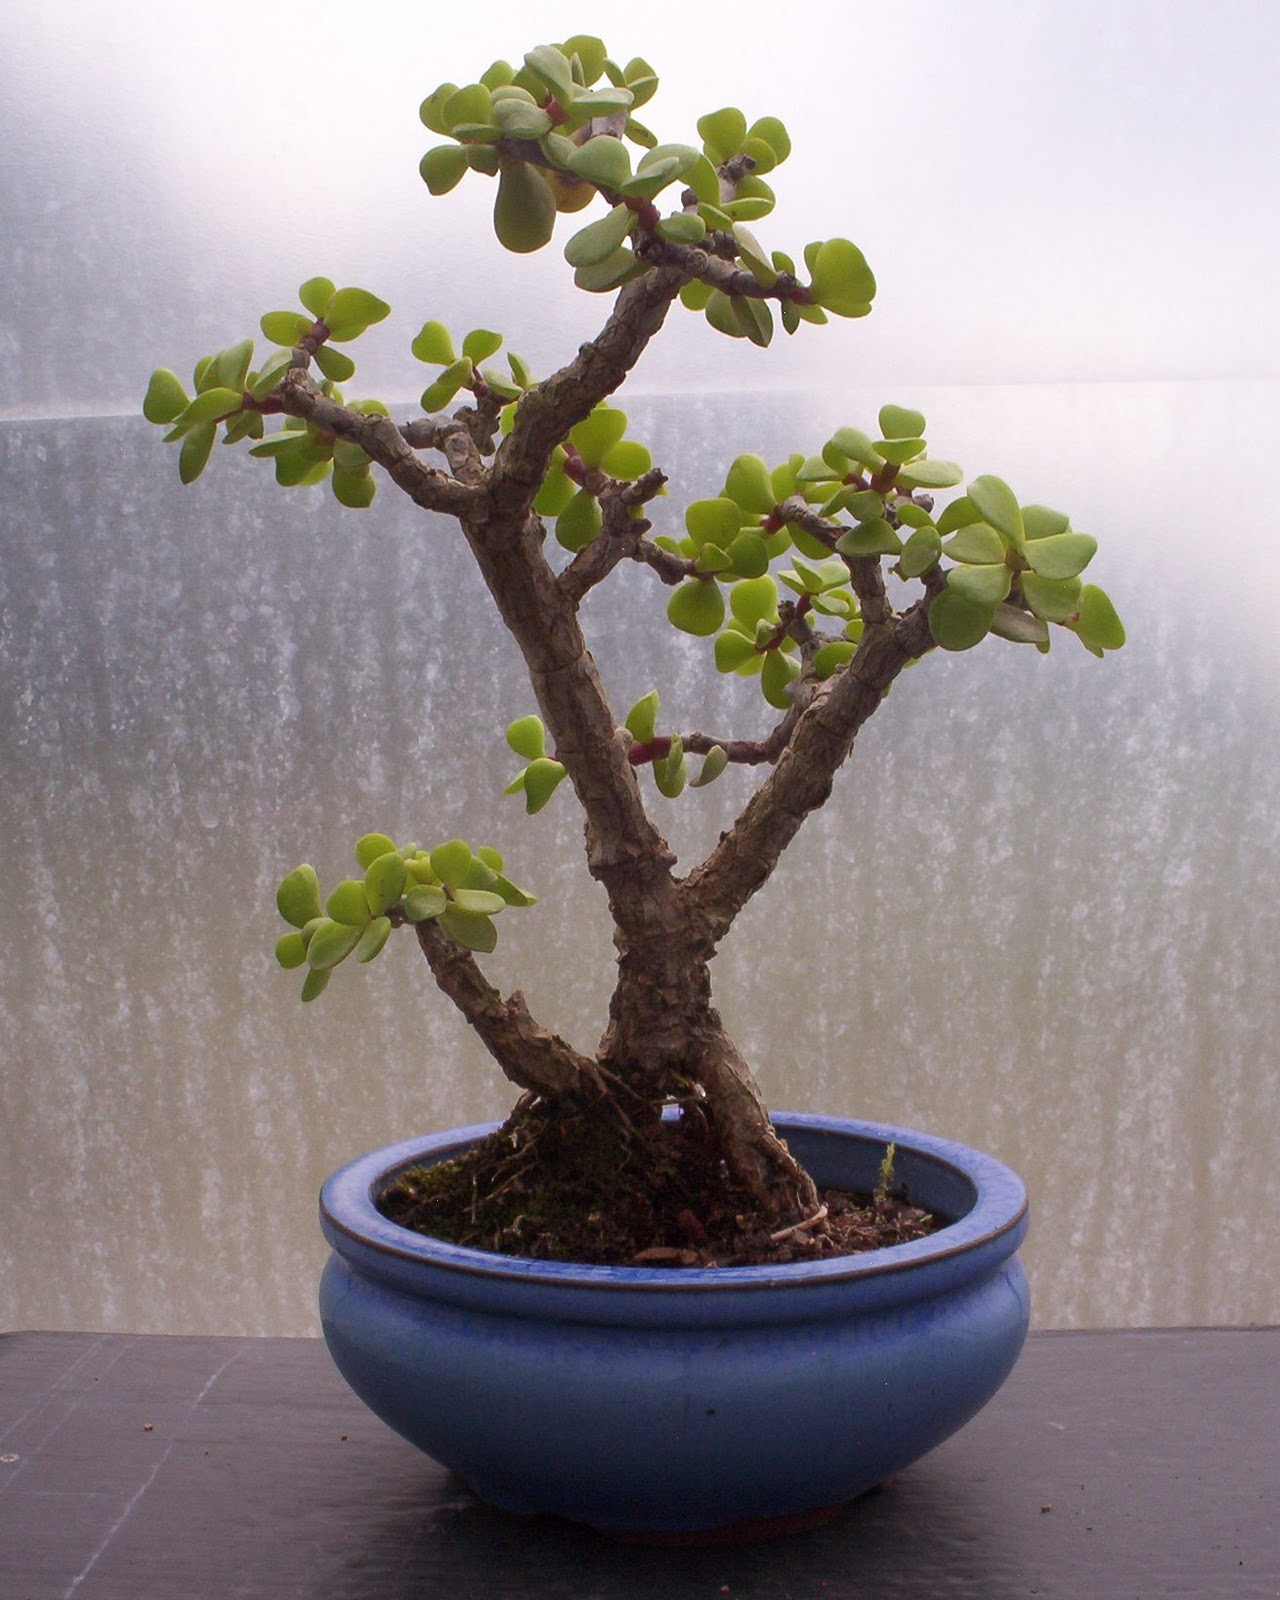 Bonsai Beginnings Make And Take Home Your Own Little Tree